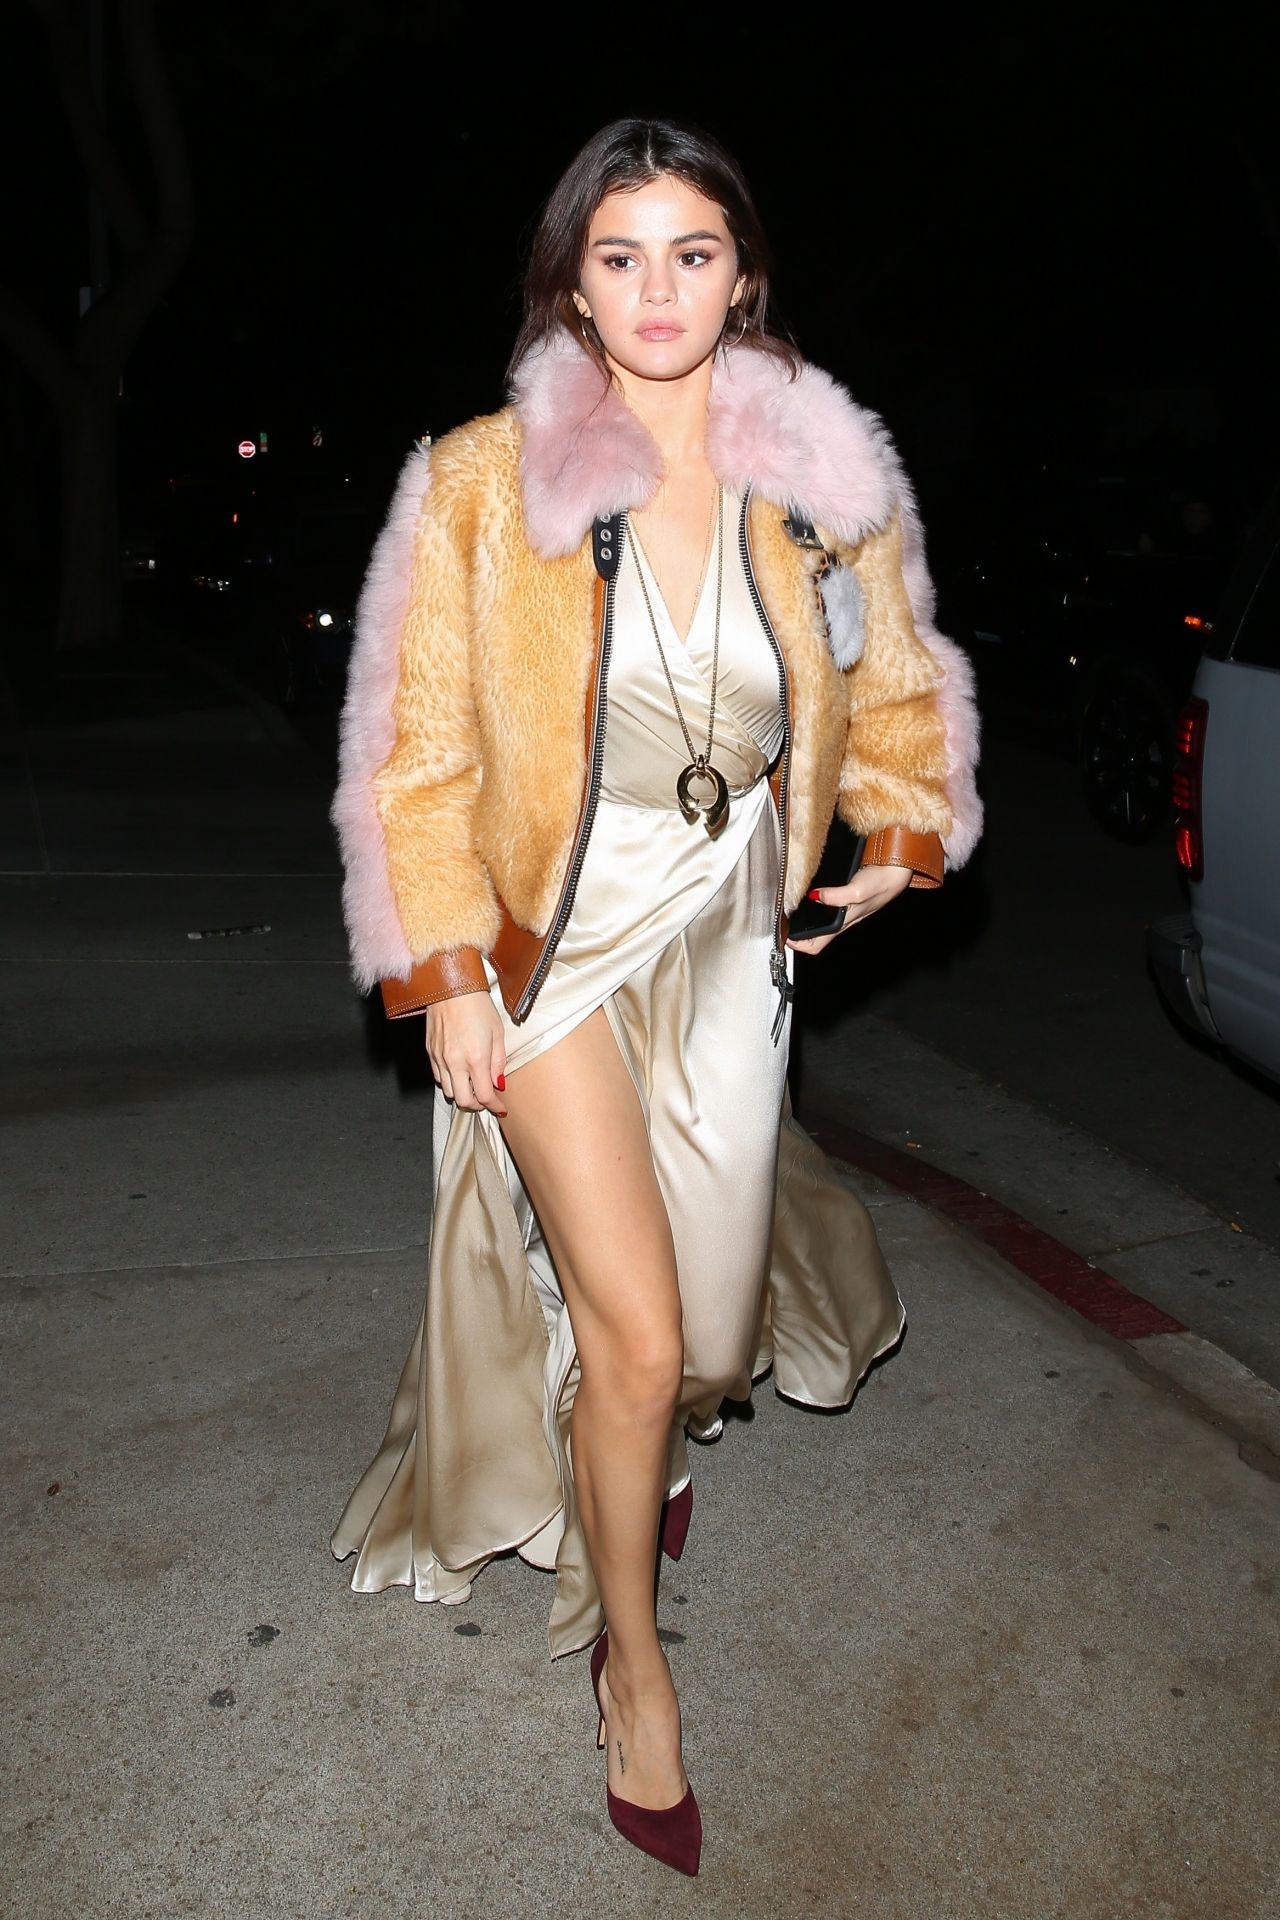 Selena Gomez Night Out Fashion Los Angeles 02 02 2018